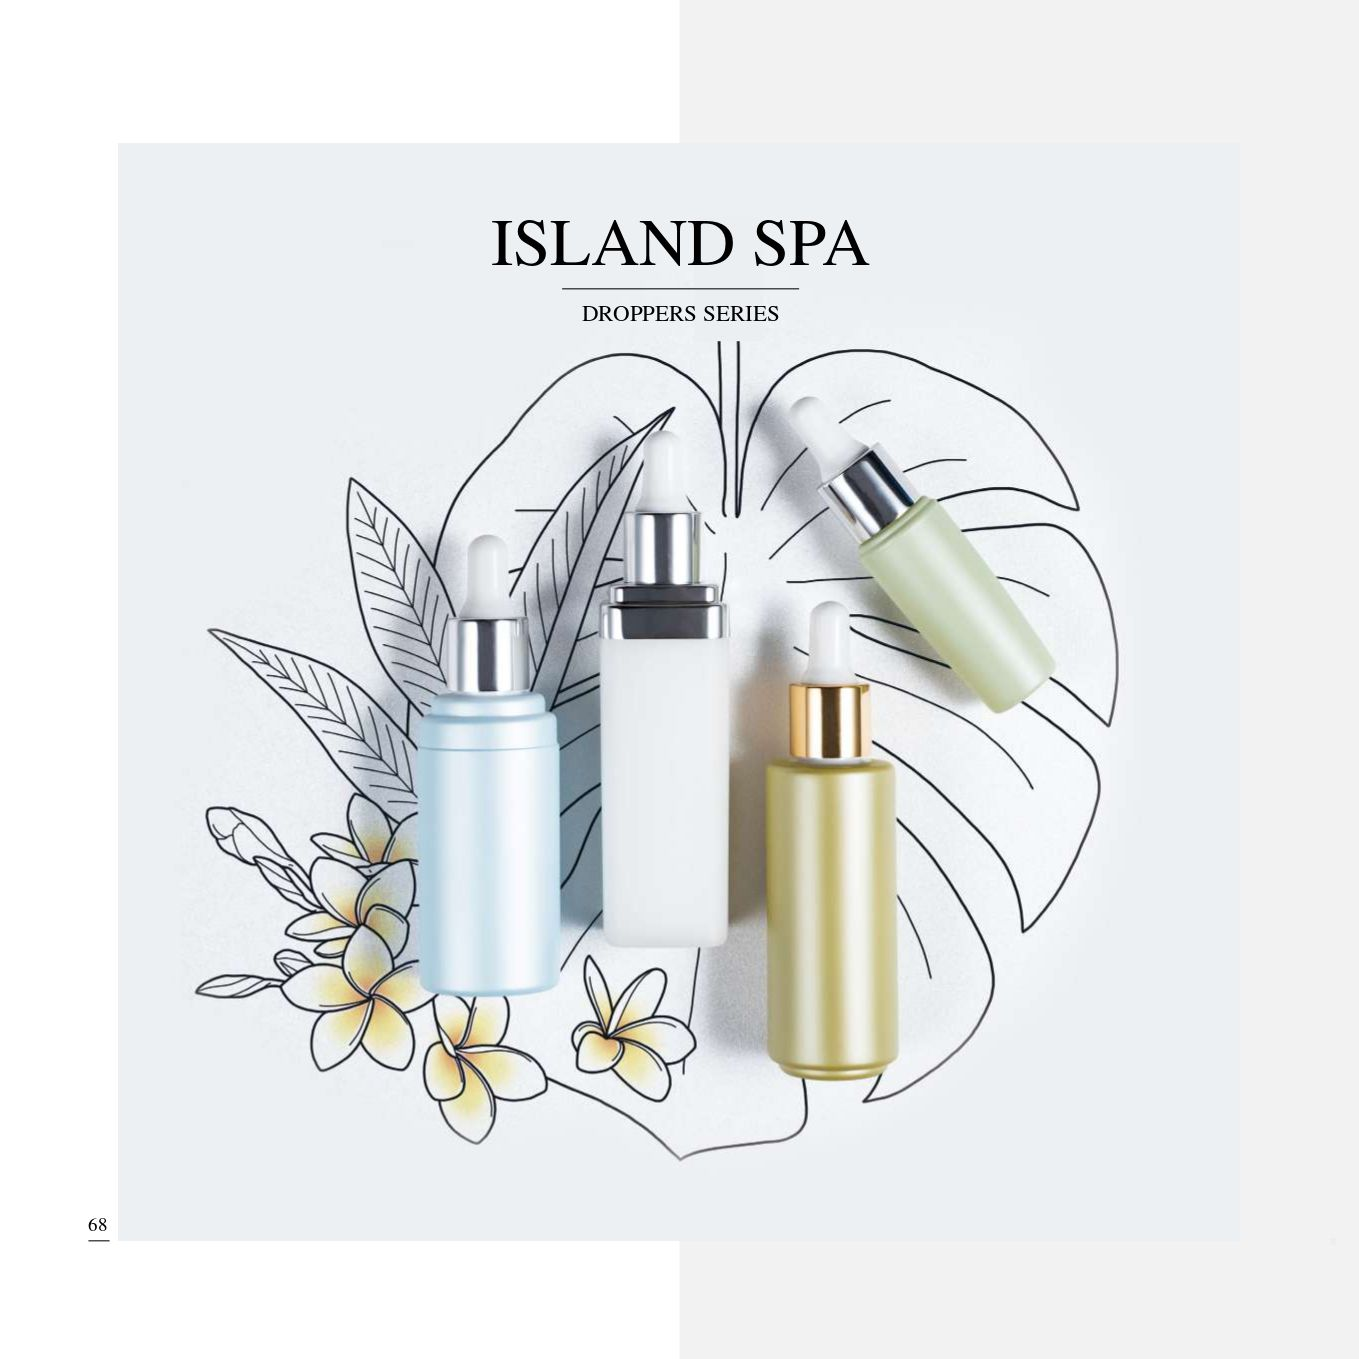 PP/PET Ecofriendly Droppers Packaging - Ecofriednly PP/PET Cosmetic Packaging Collection - Island Spa series